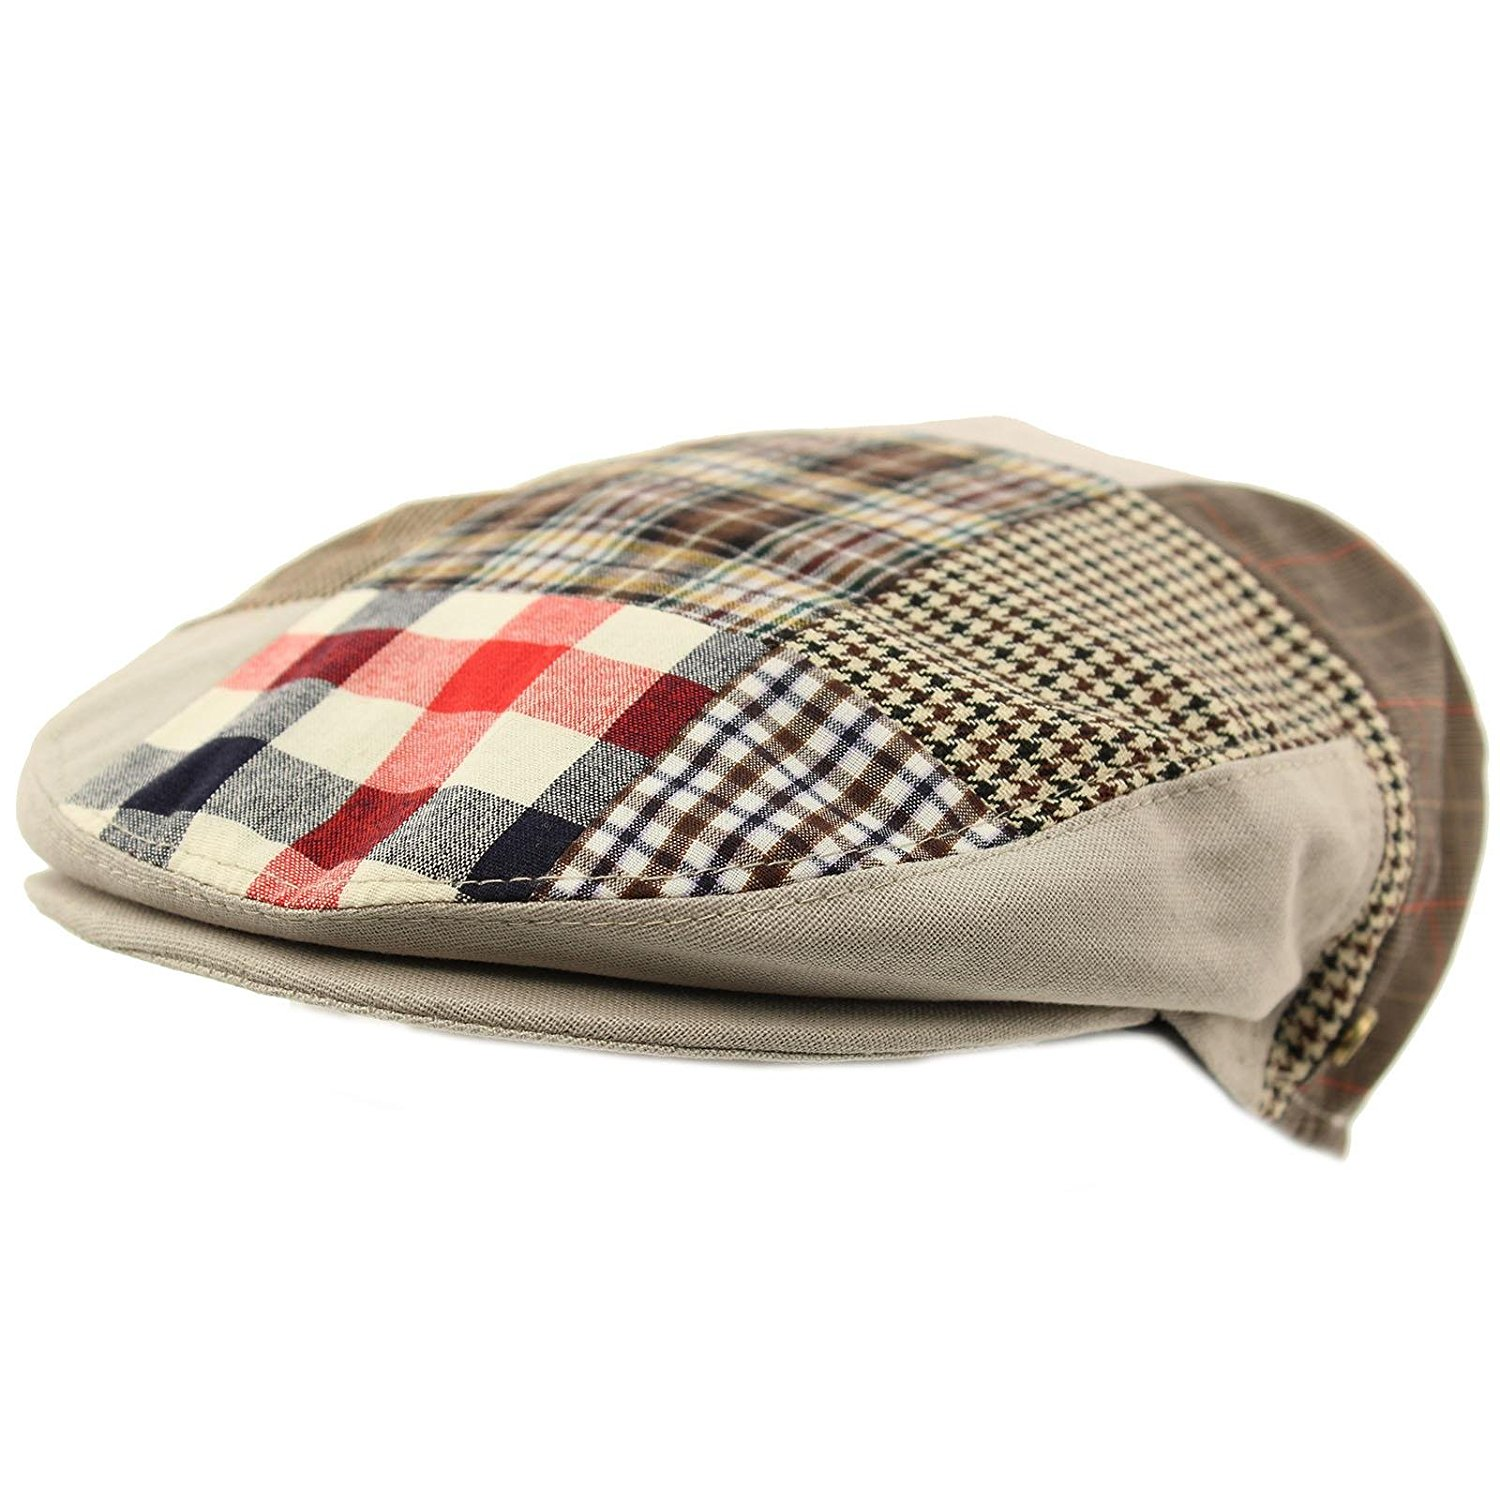 Get Quotations · Men s Cotton 14 Patch IVY Plaids Houndstooth Driver Cabby  Flat Cap Hat Gray 4899f72fcc5a